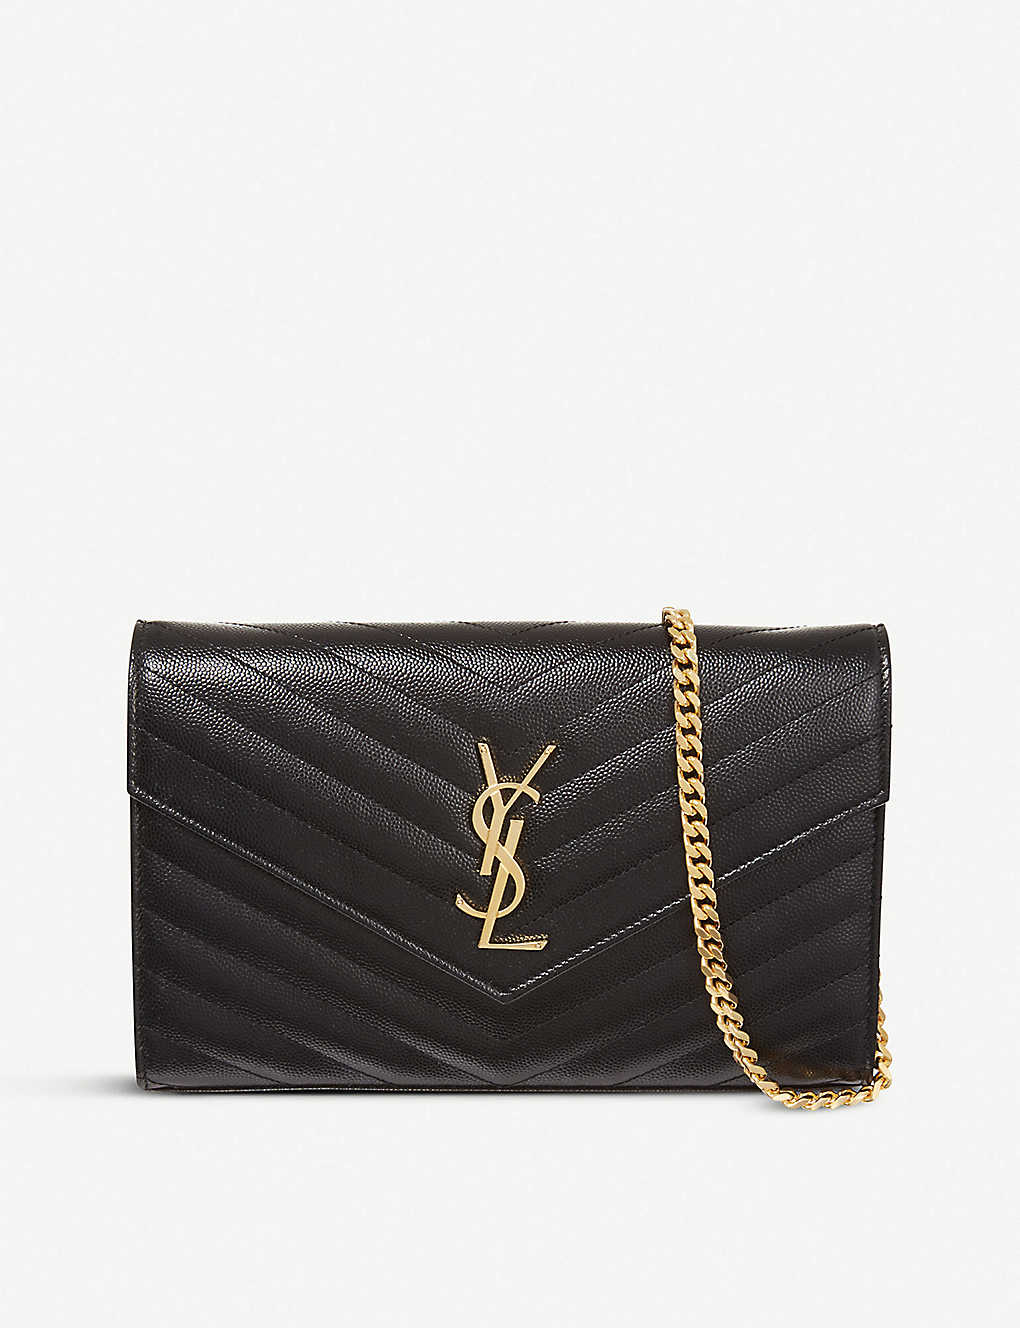 40dccd978 SAINT LAURENT - Monogram quilted-leather shoulder bag | Selfridges.com